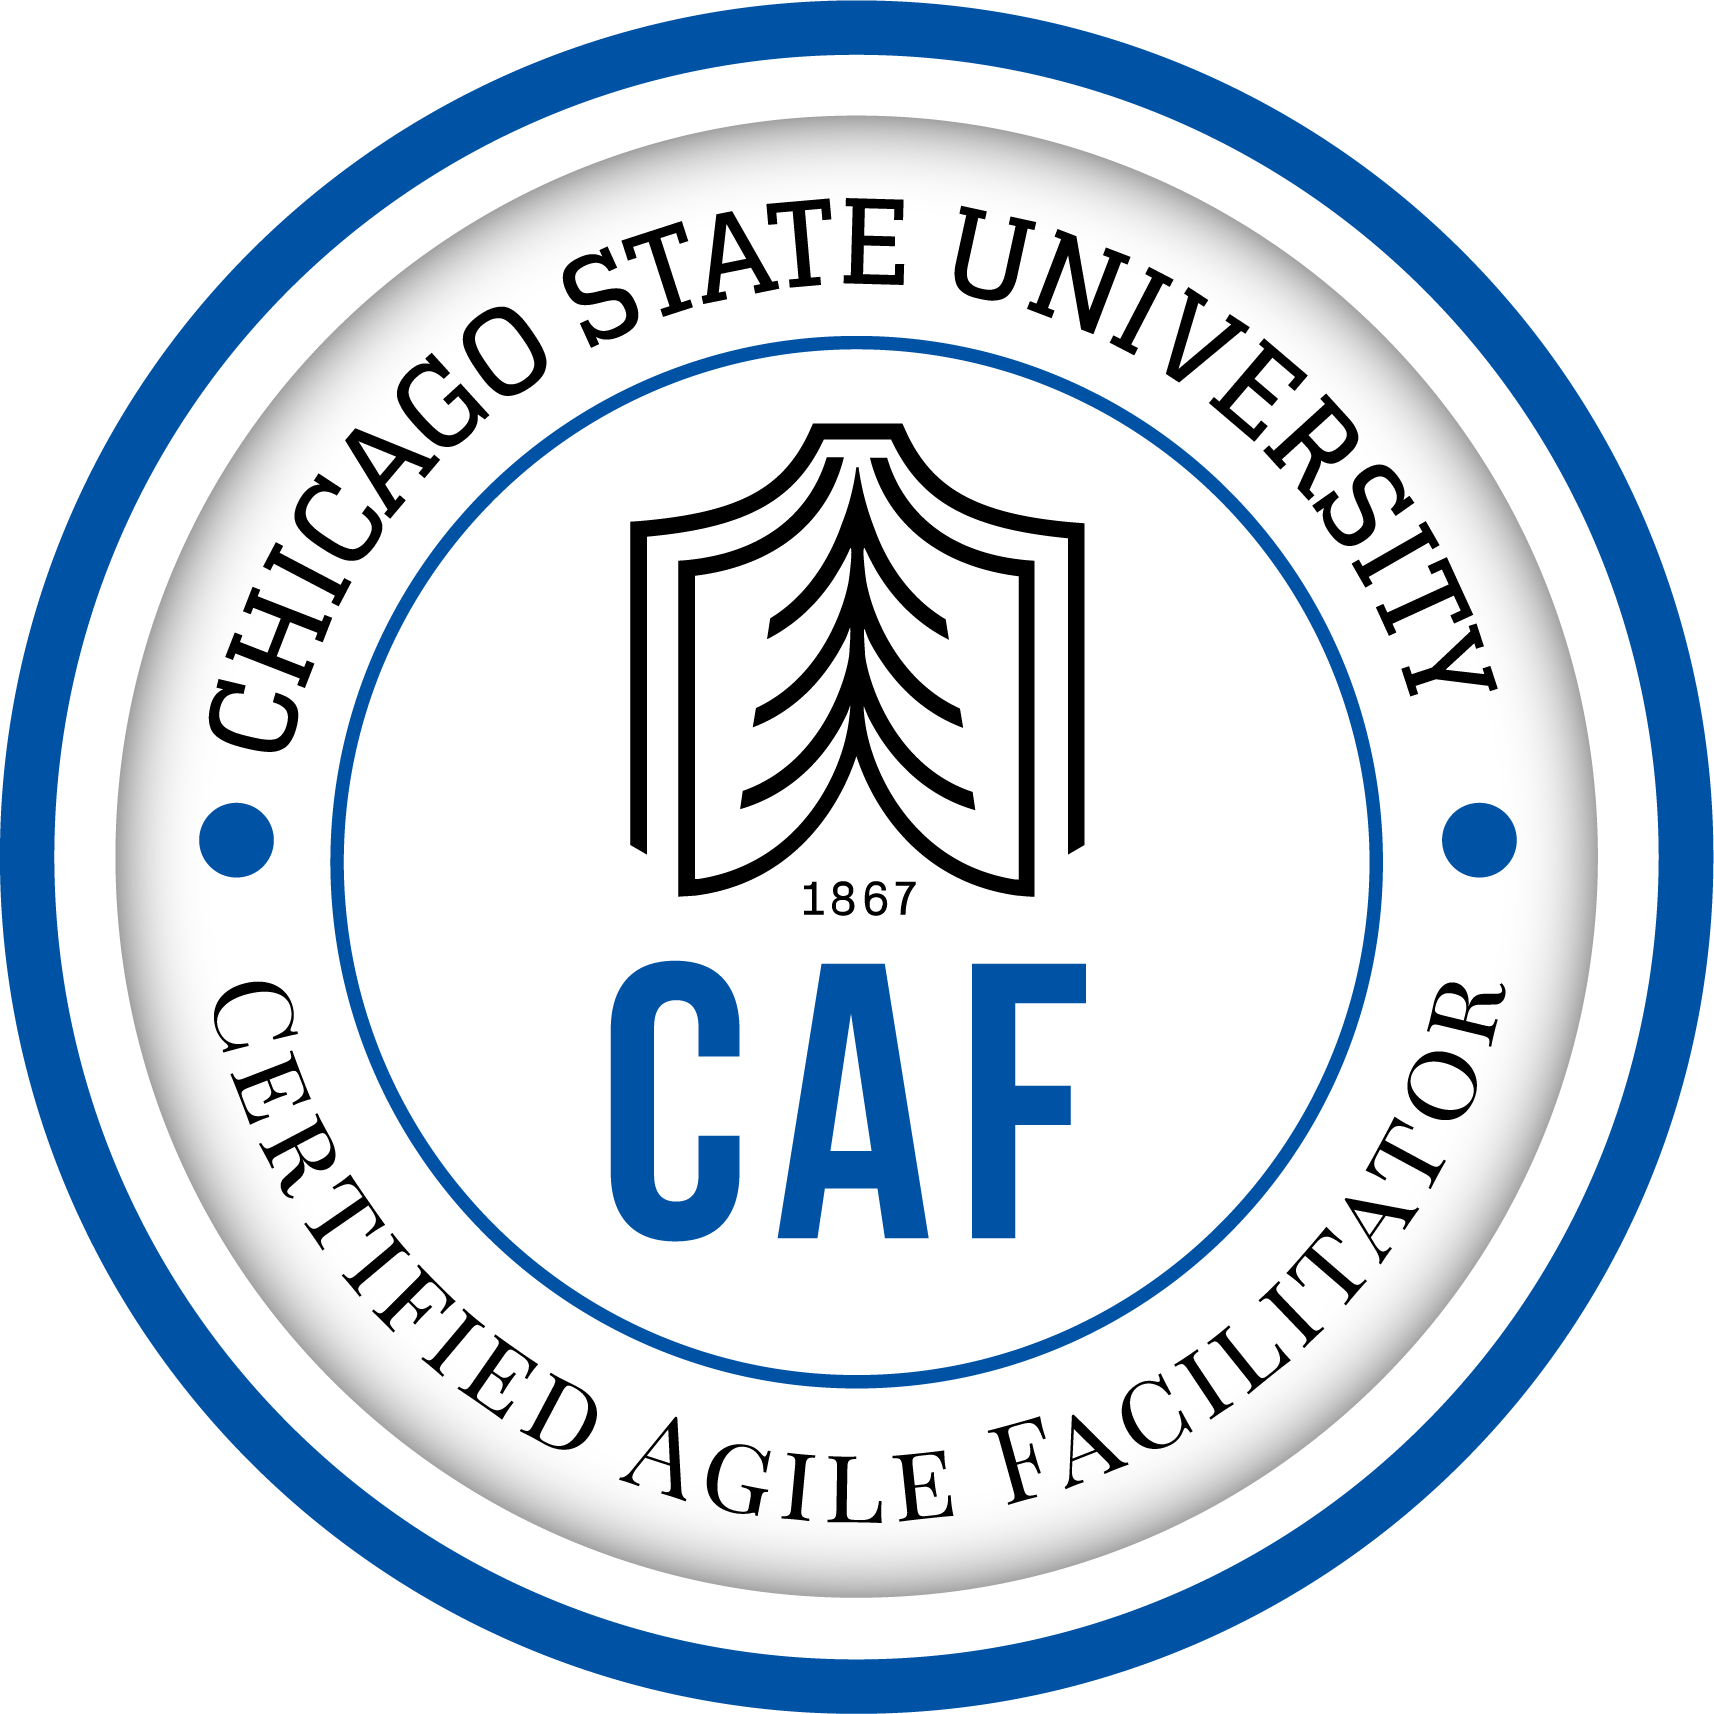 Certified Agile Coach (CAC) from Chicago State University